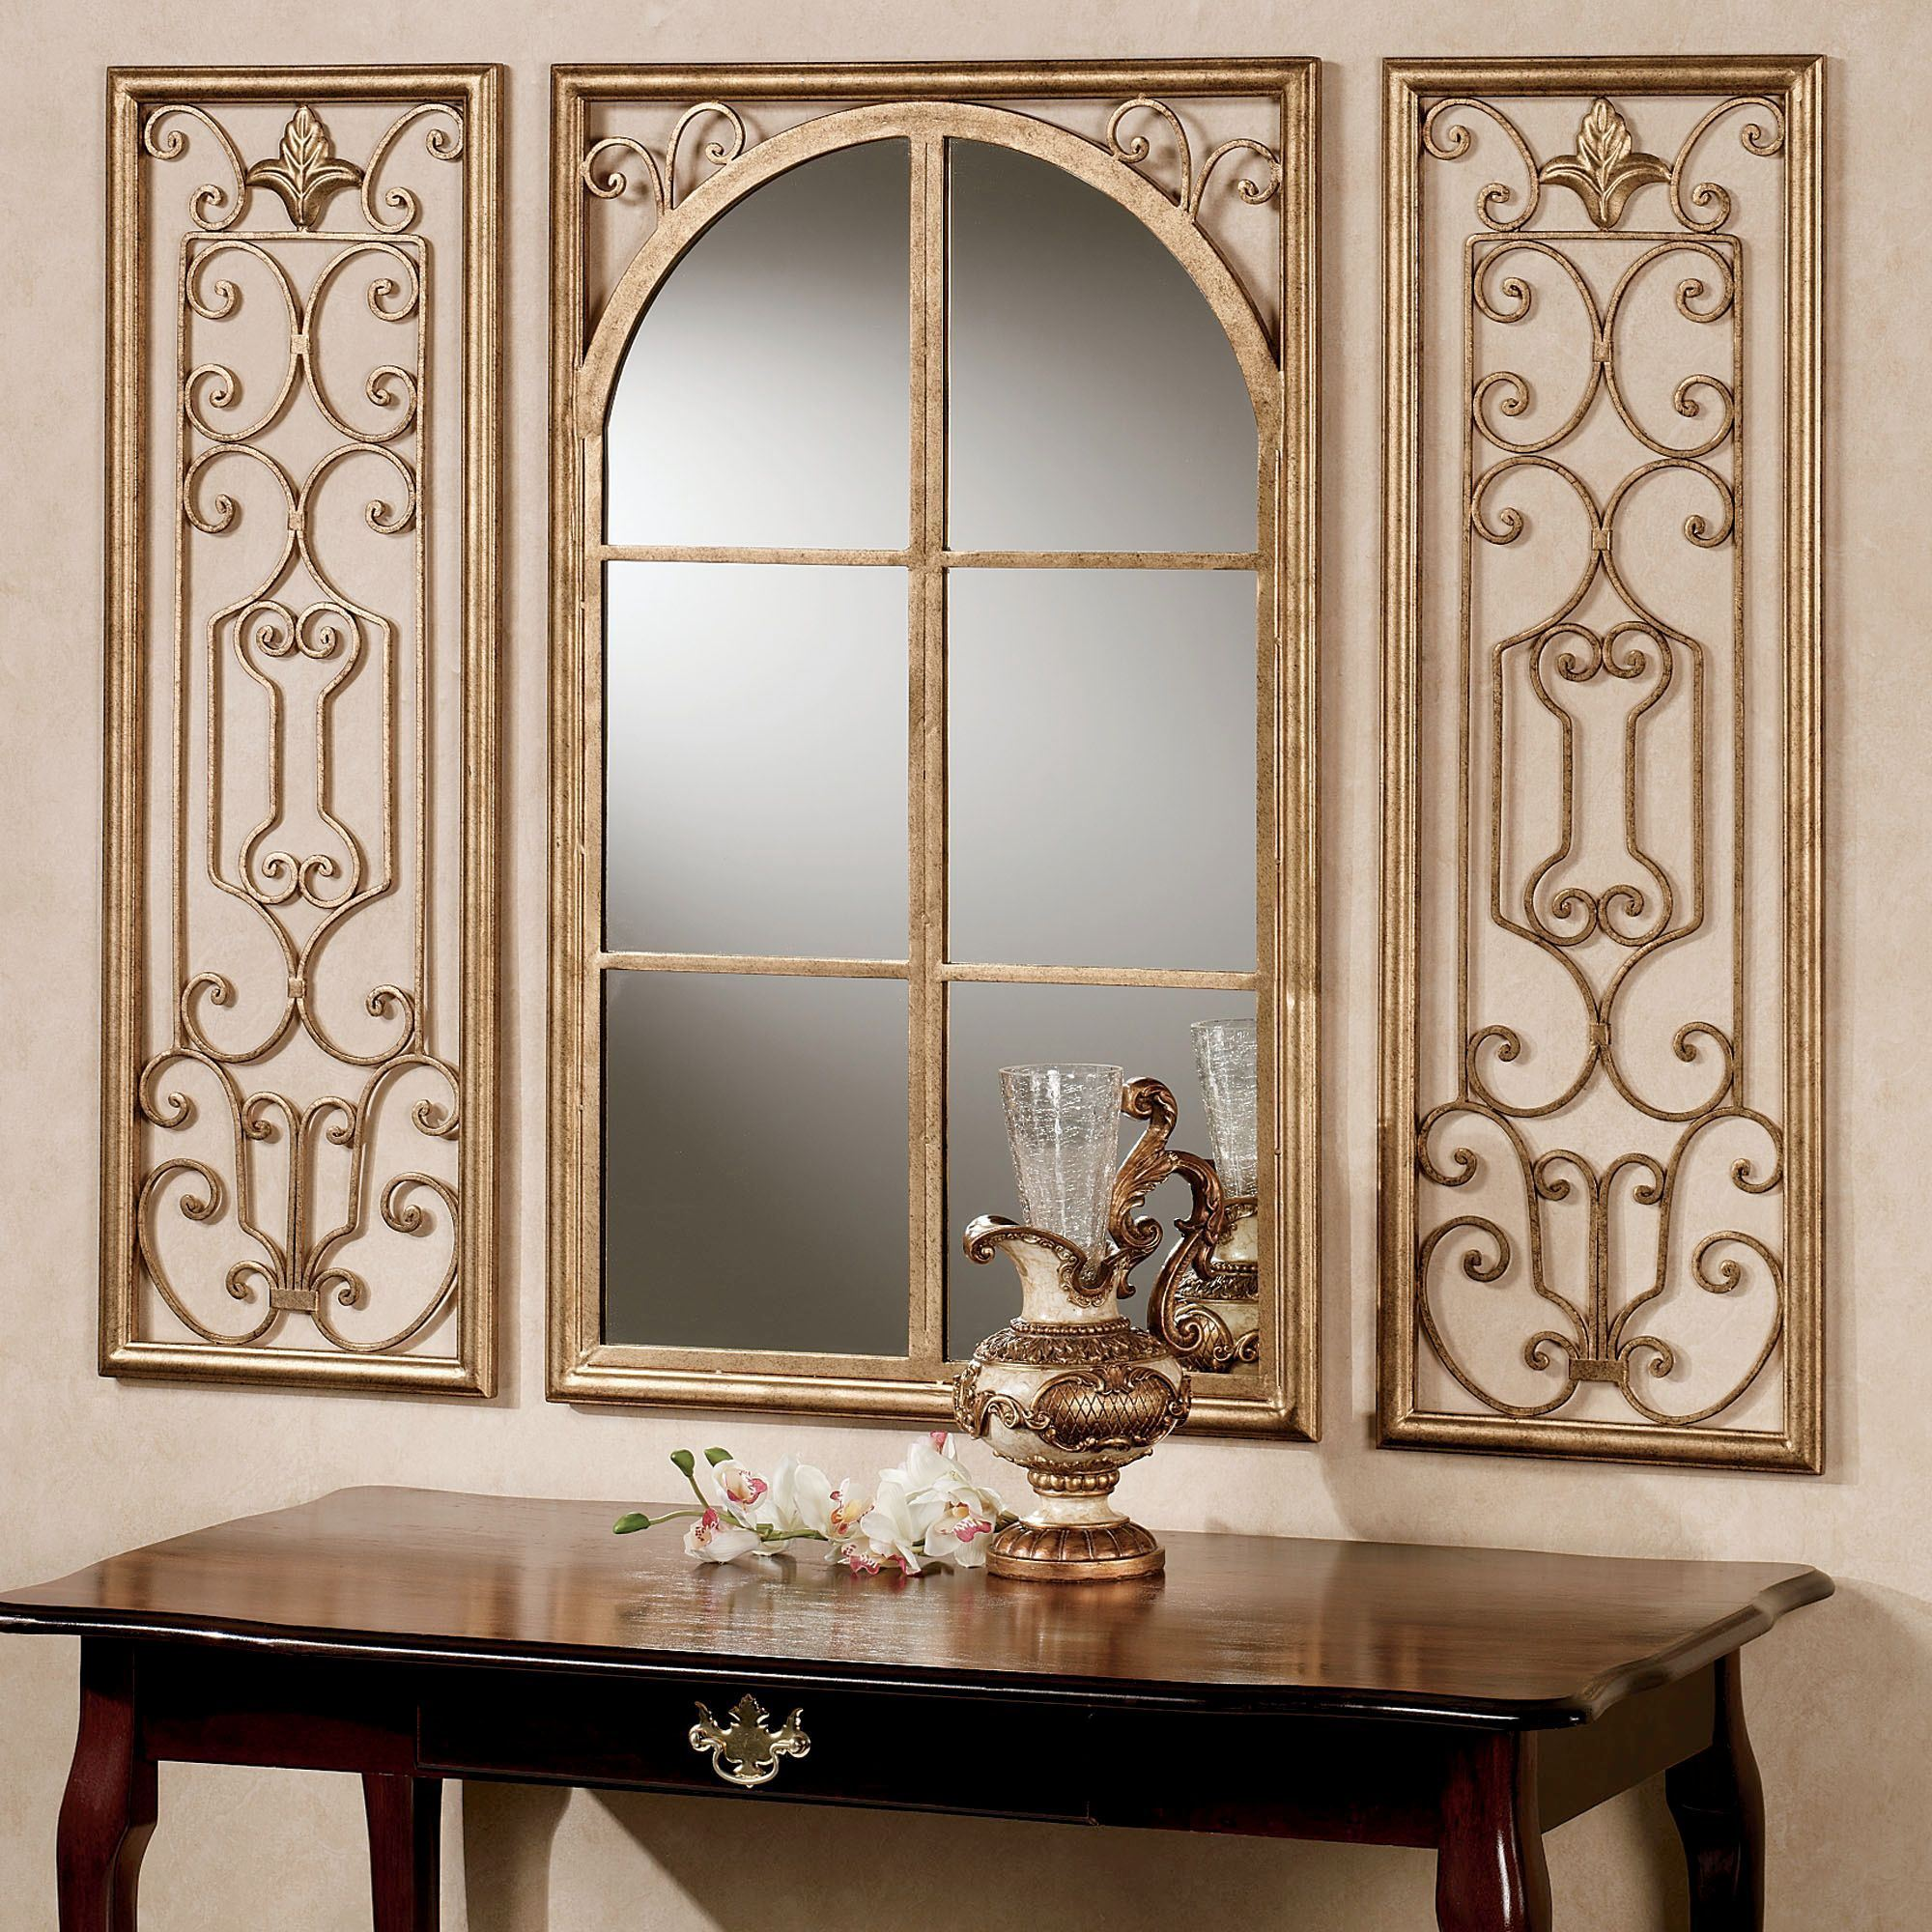 Decorative Wall Mirrors To Expand Loxiwvj